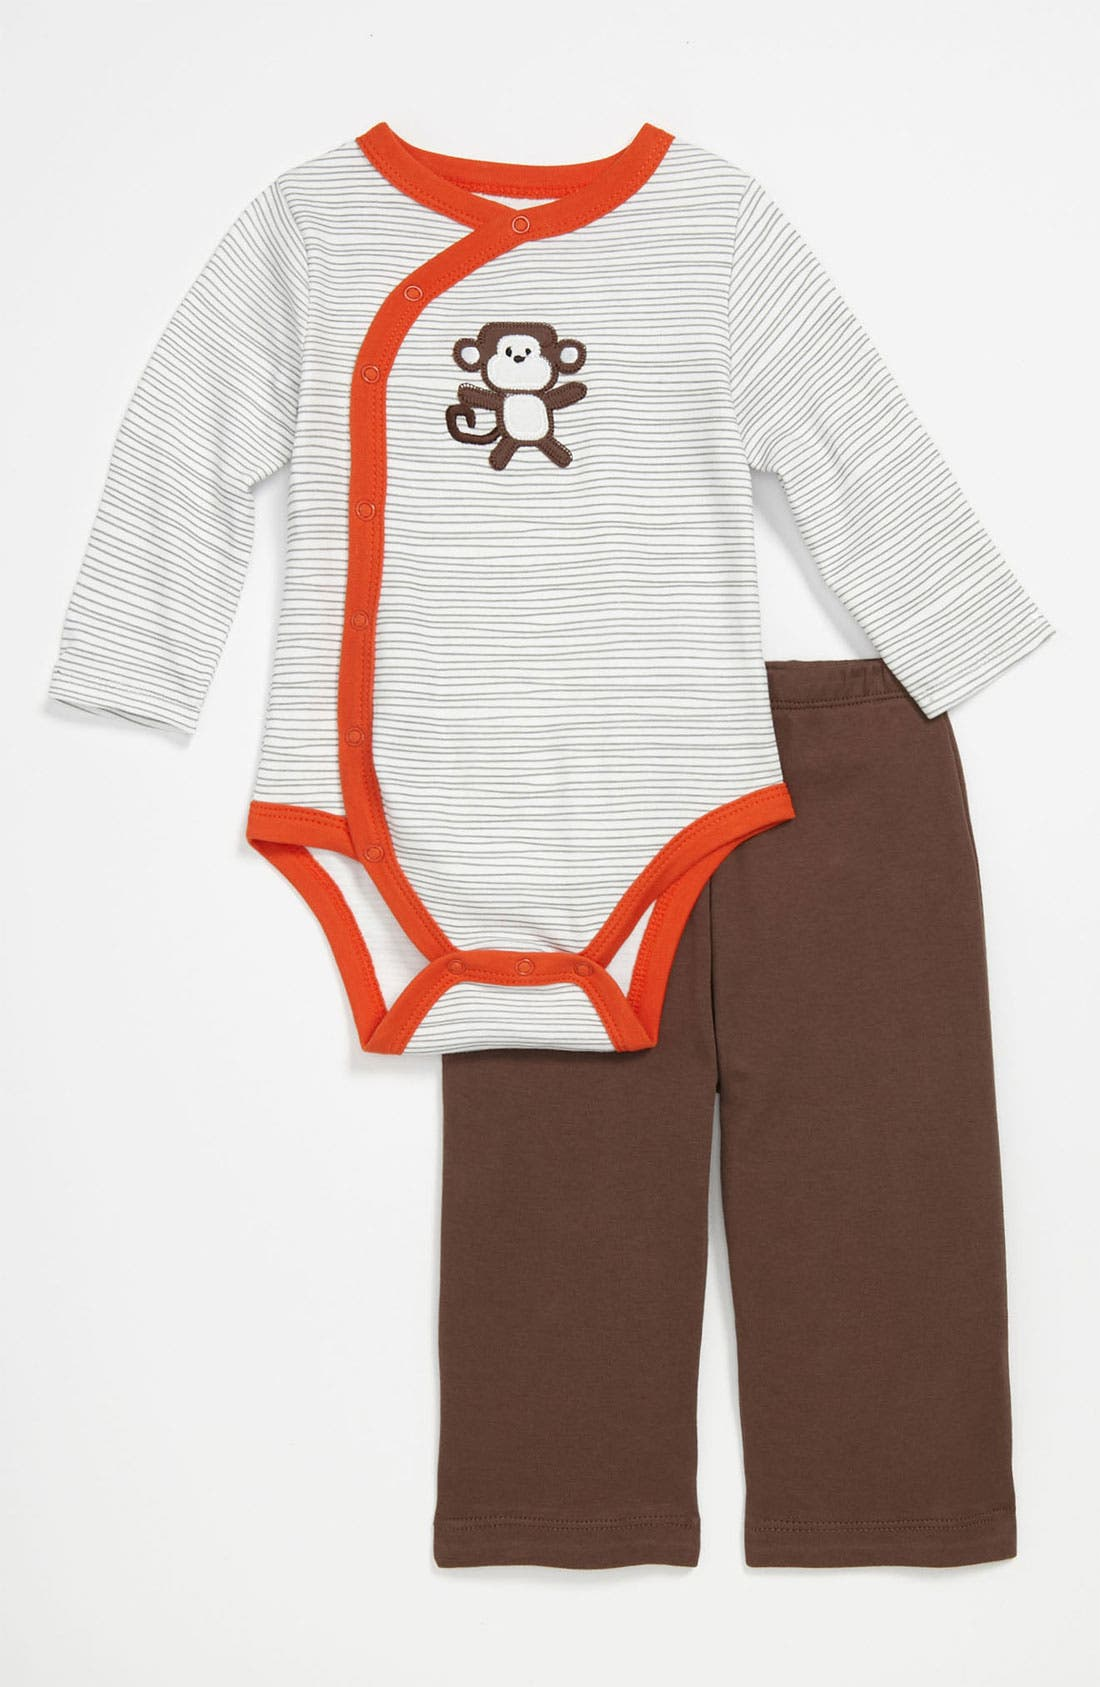 Main Image - Offspring Bodysuit & Pants (Infant)